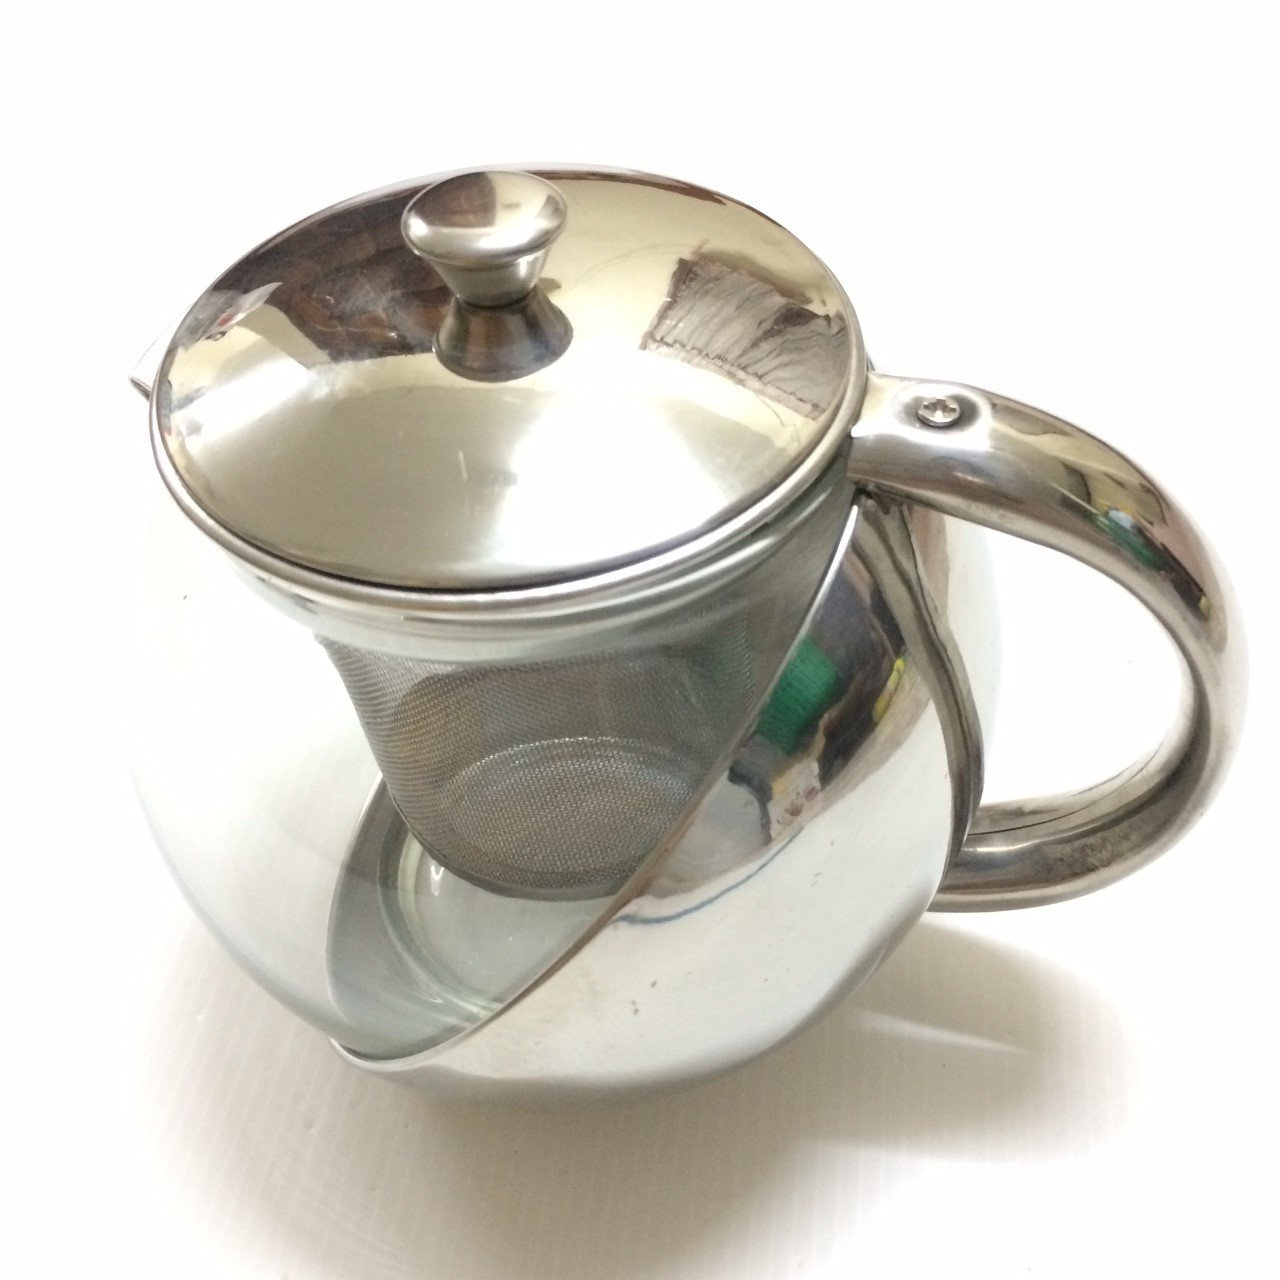 Half-Moon Teapot and Tea Strainer Set & Lid Teapot Kettle Kitchen Dining 25.36 oz. by Pisana1979 (Image #4)